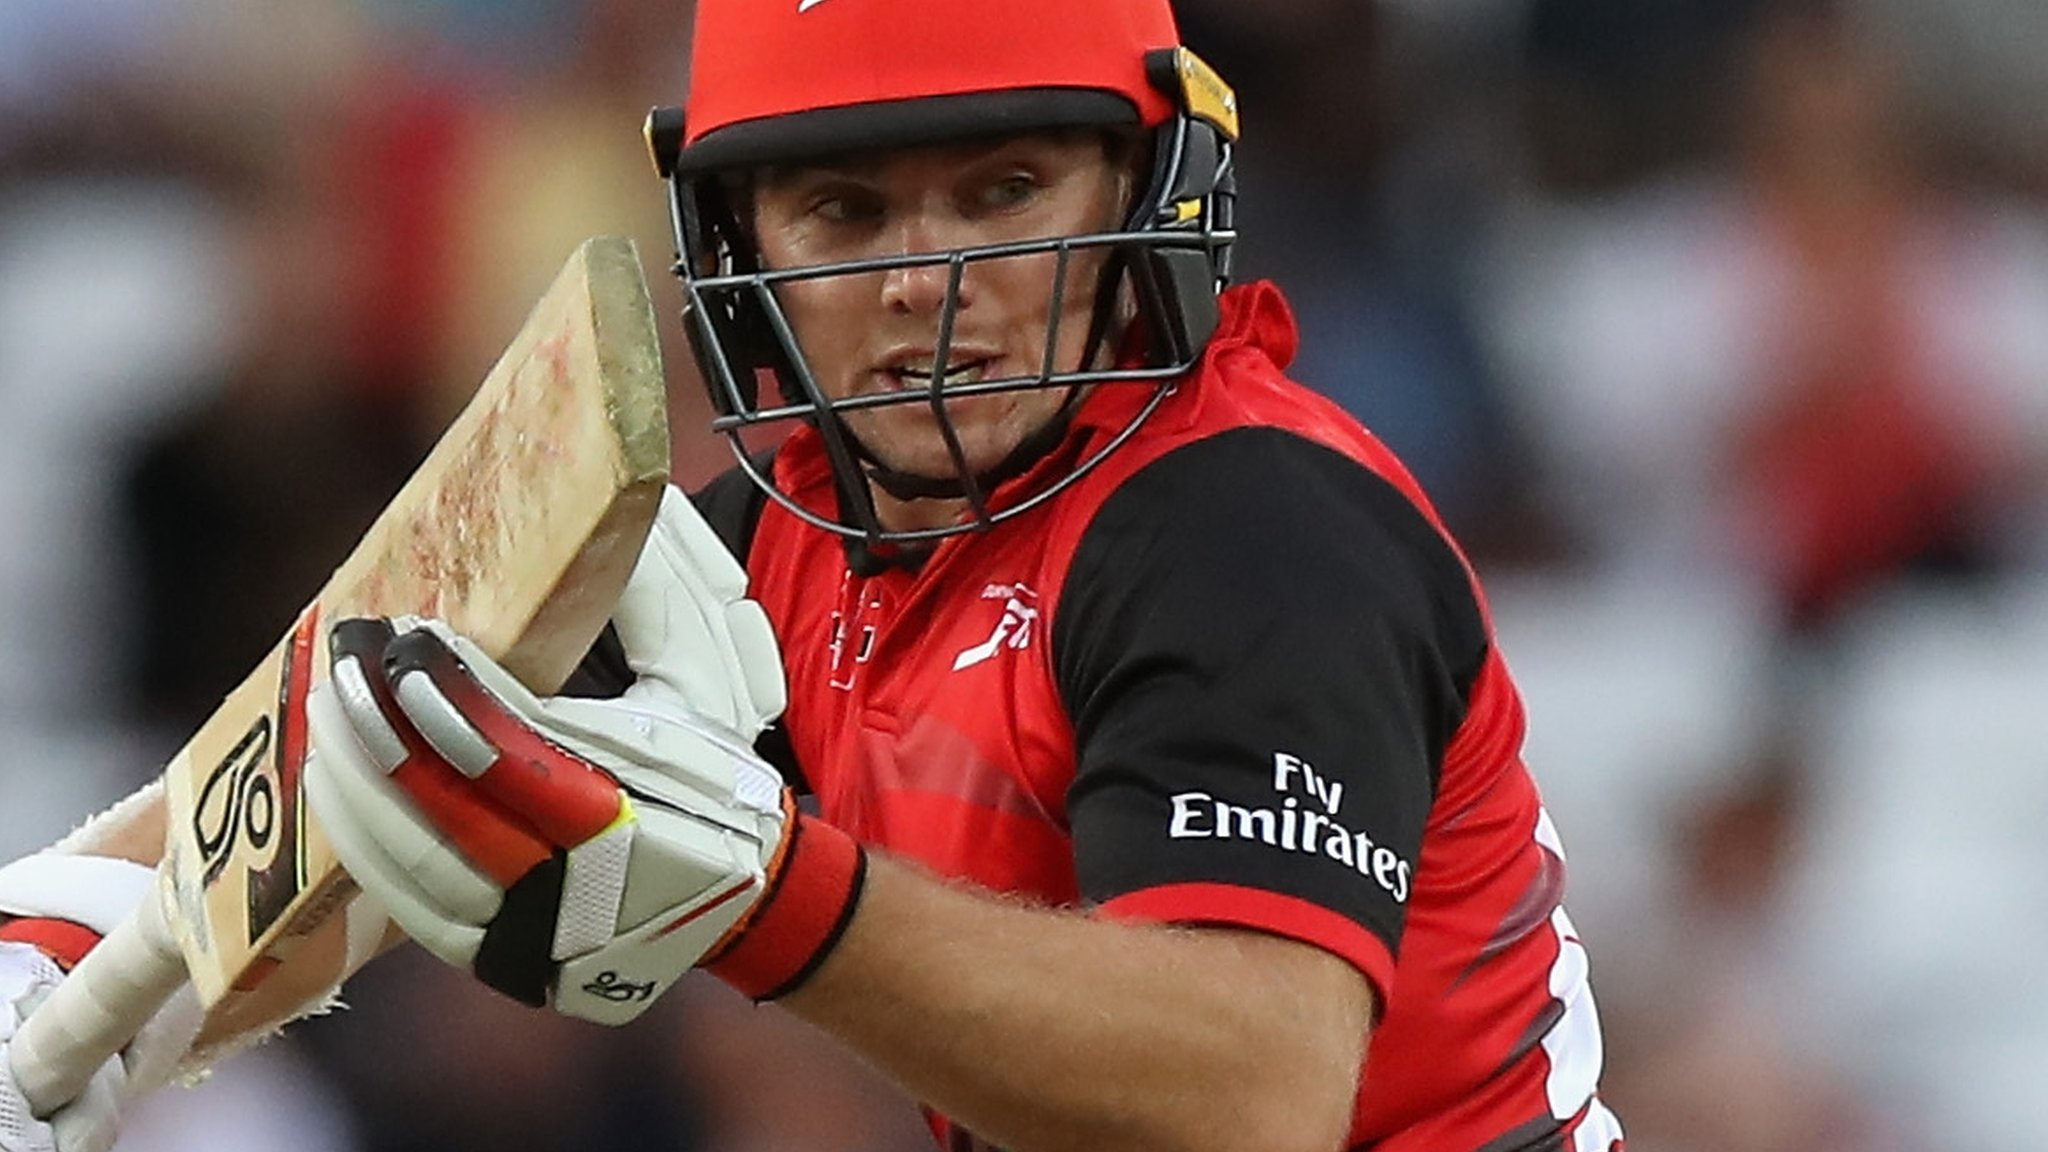 Notts Outlaws v Durham Jets: Tom Latham stars in T20 as Durham win by 34 runs